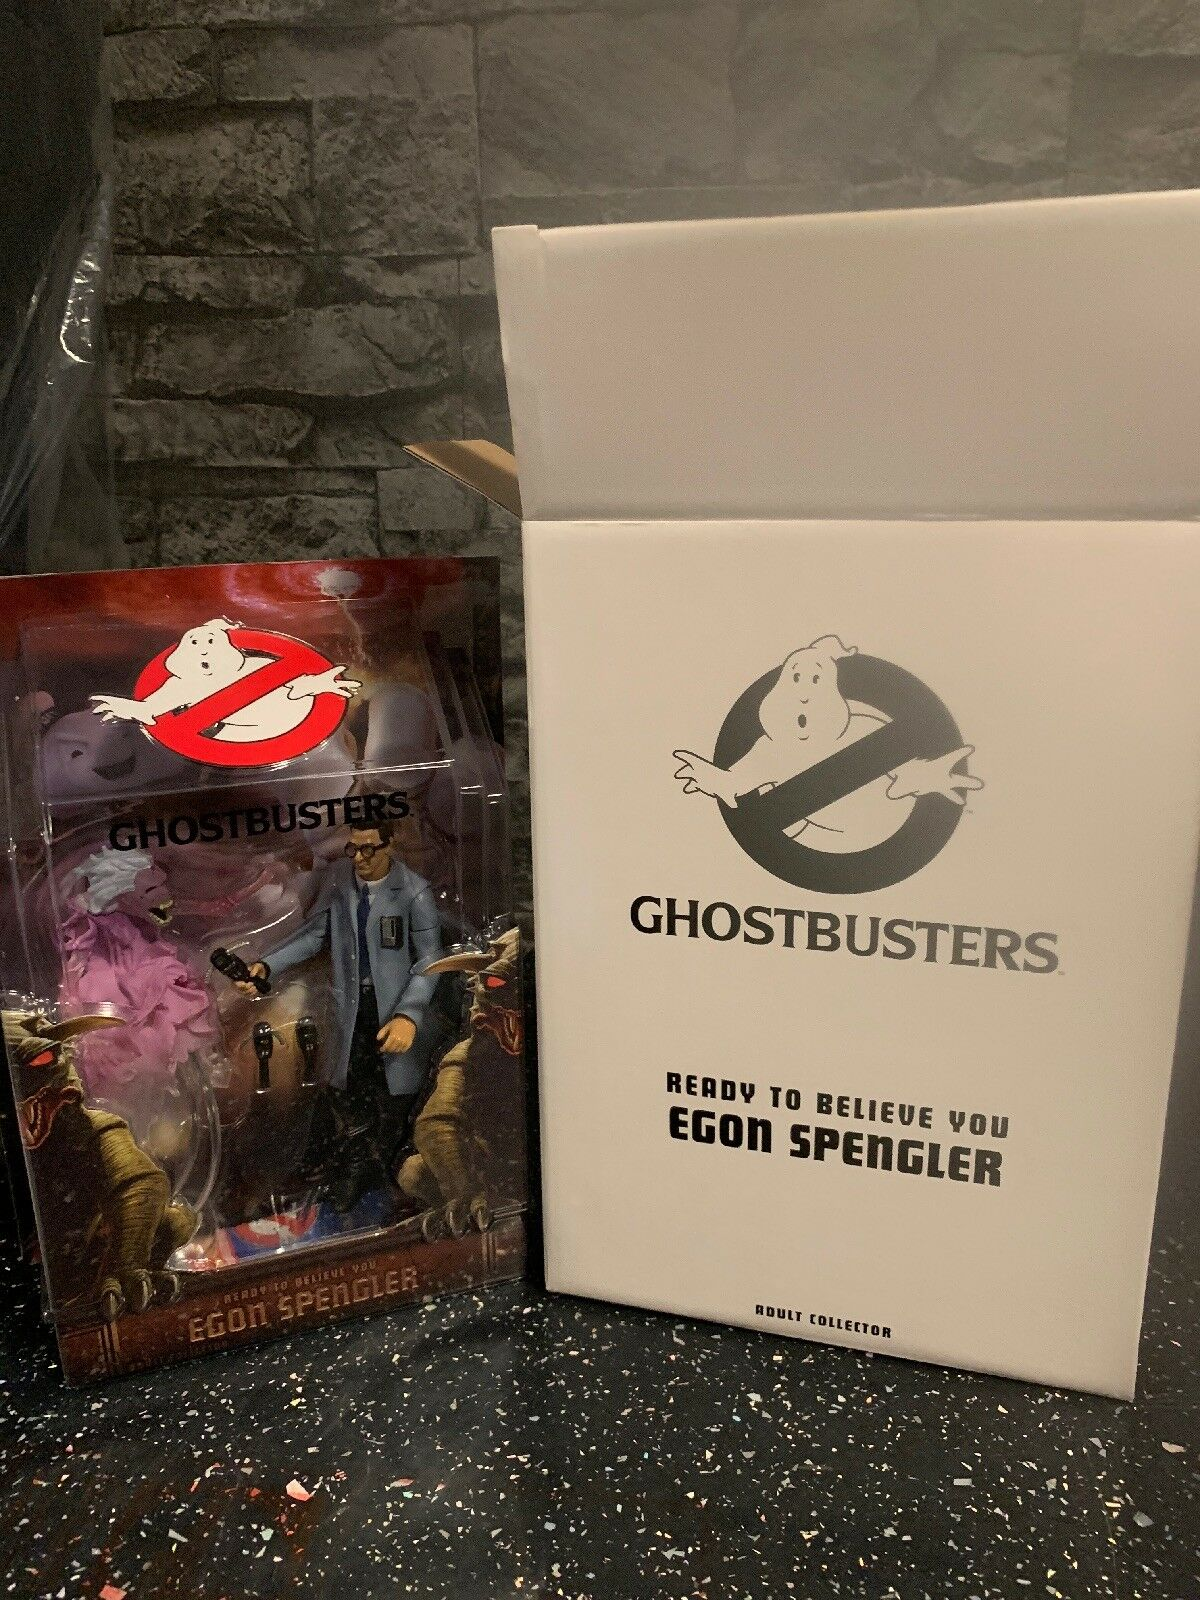 Matty Collector Ghostbusters Egon Spengler Ready To Believe Adult Collector New